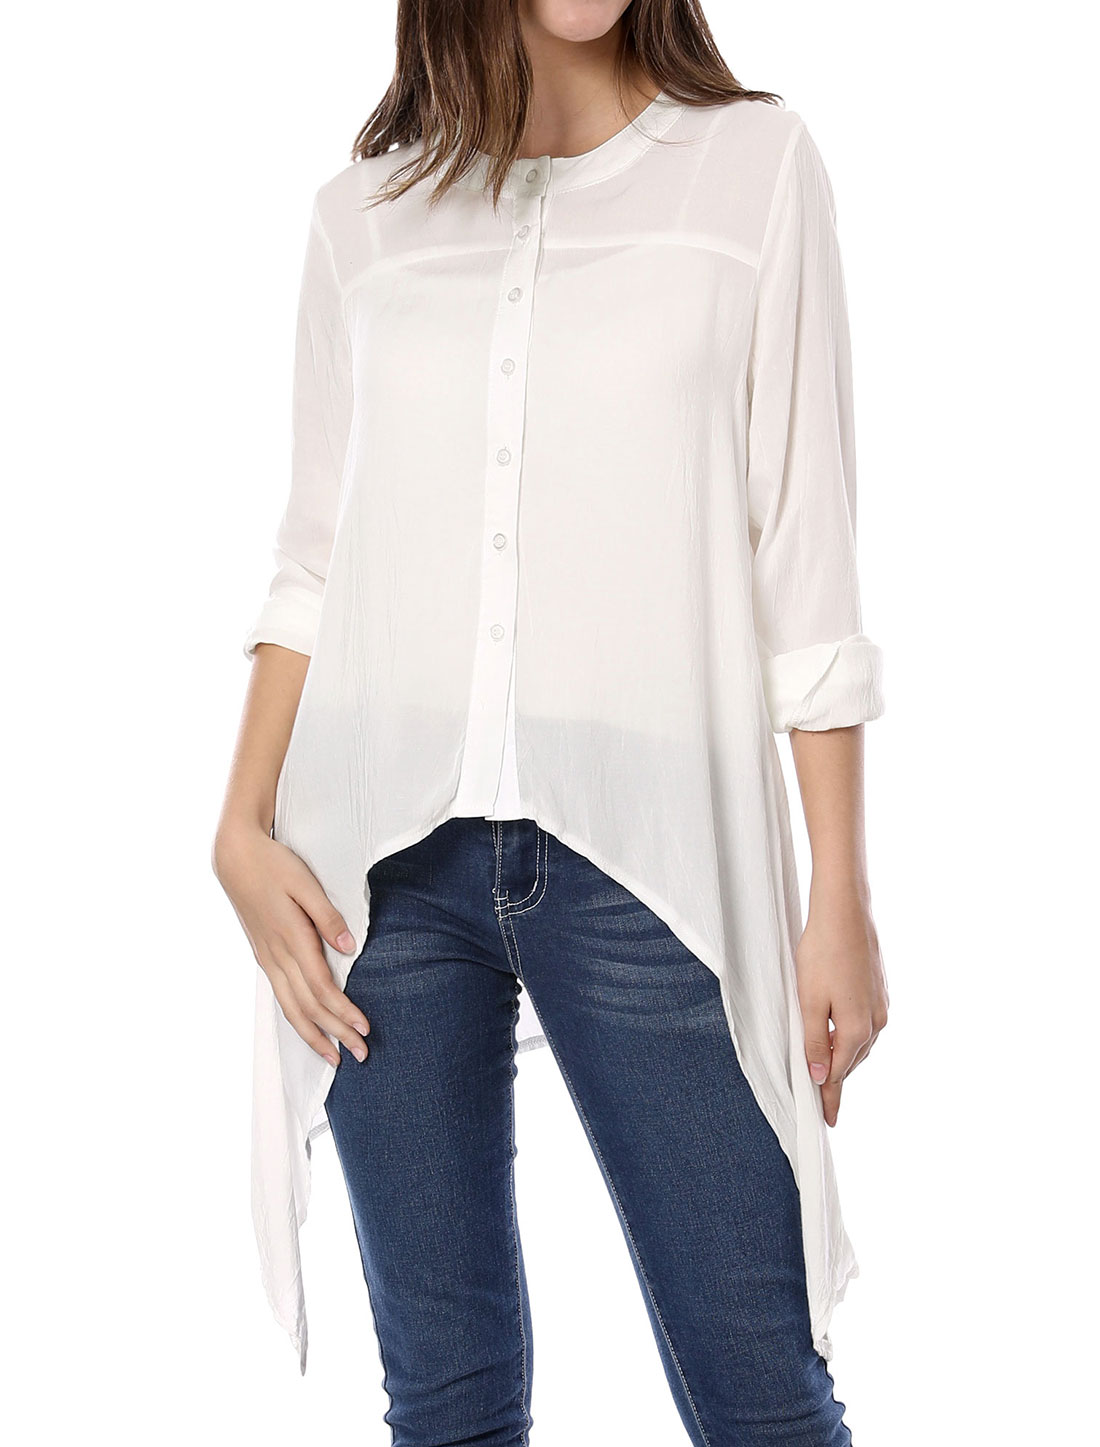 Women NEW Fashion Irregular Hem Design Button Down Off White Blouse L